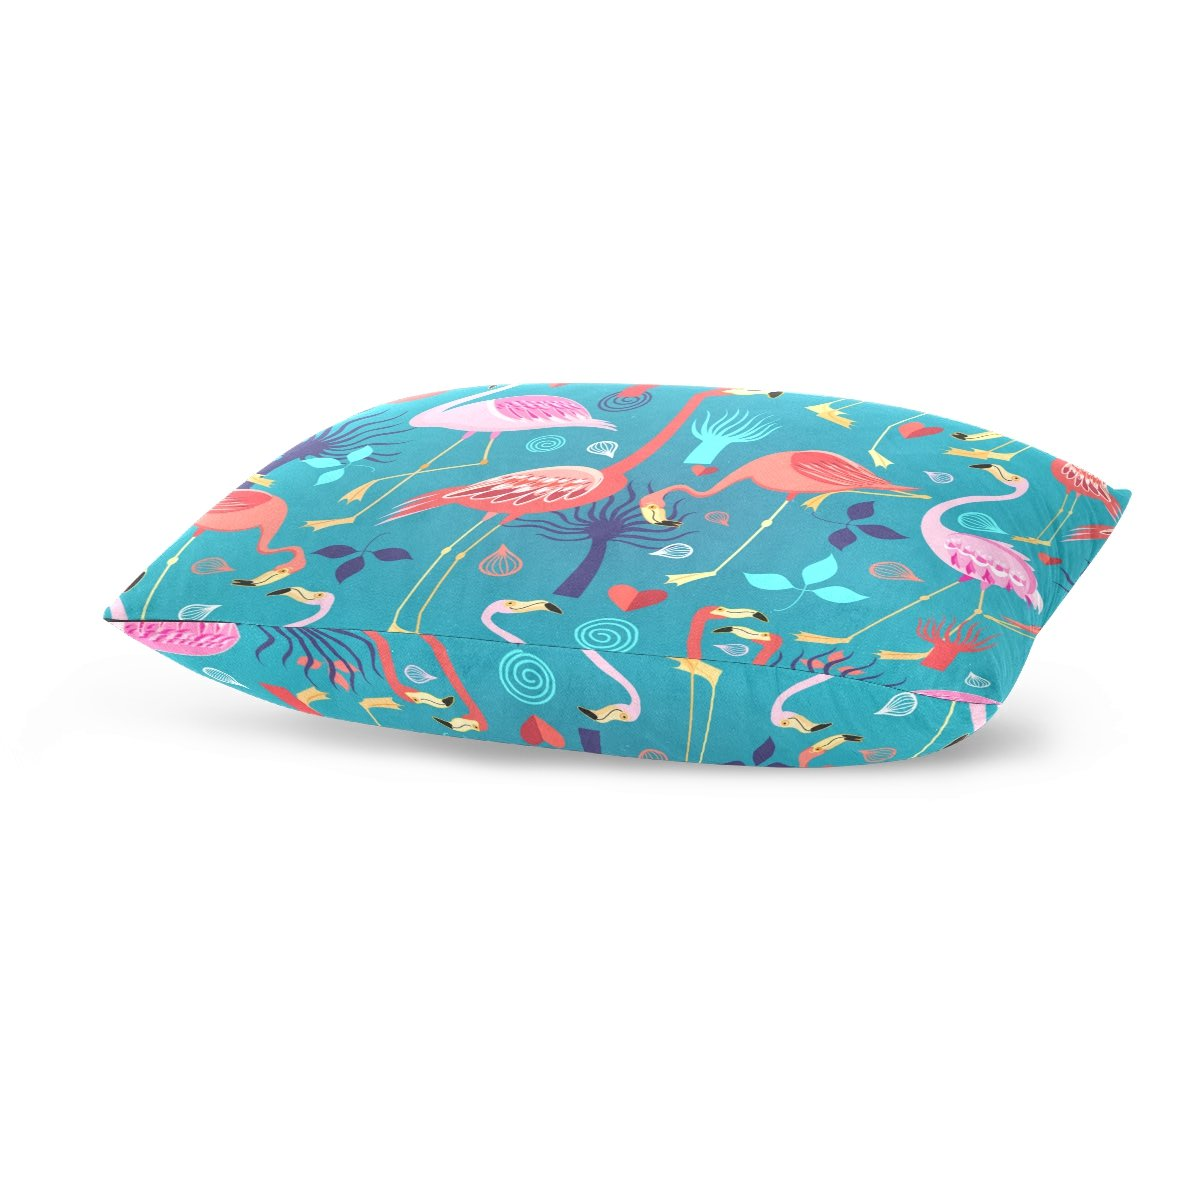 Cotton Velvet Pillowcases Flamingos Love Soft Pillow Protector with Hidden Zipper 20 x 26 Inch by My Little Nest (Image #4)